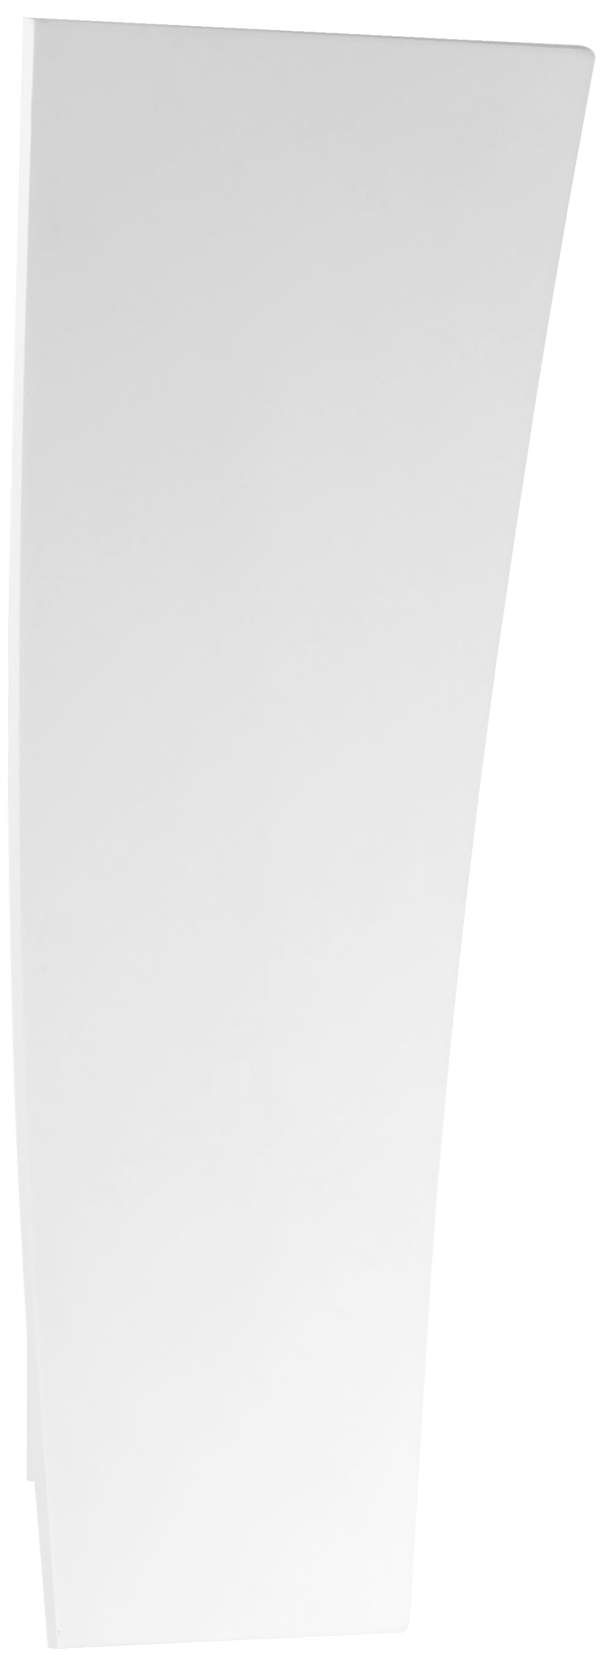 Photo of Et2 Alumilux 28 Inch High White Led Outdoor Wall Light